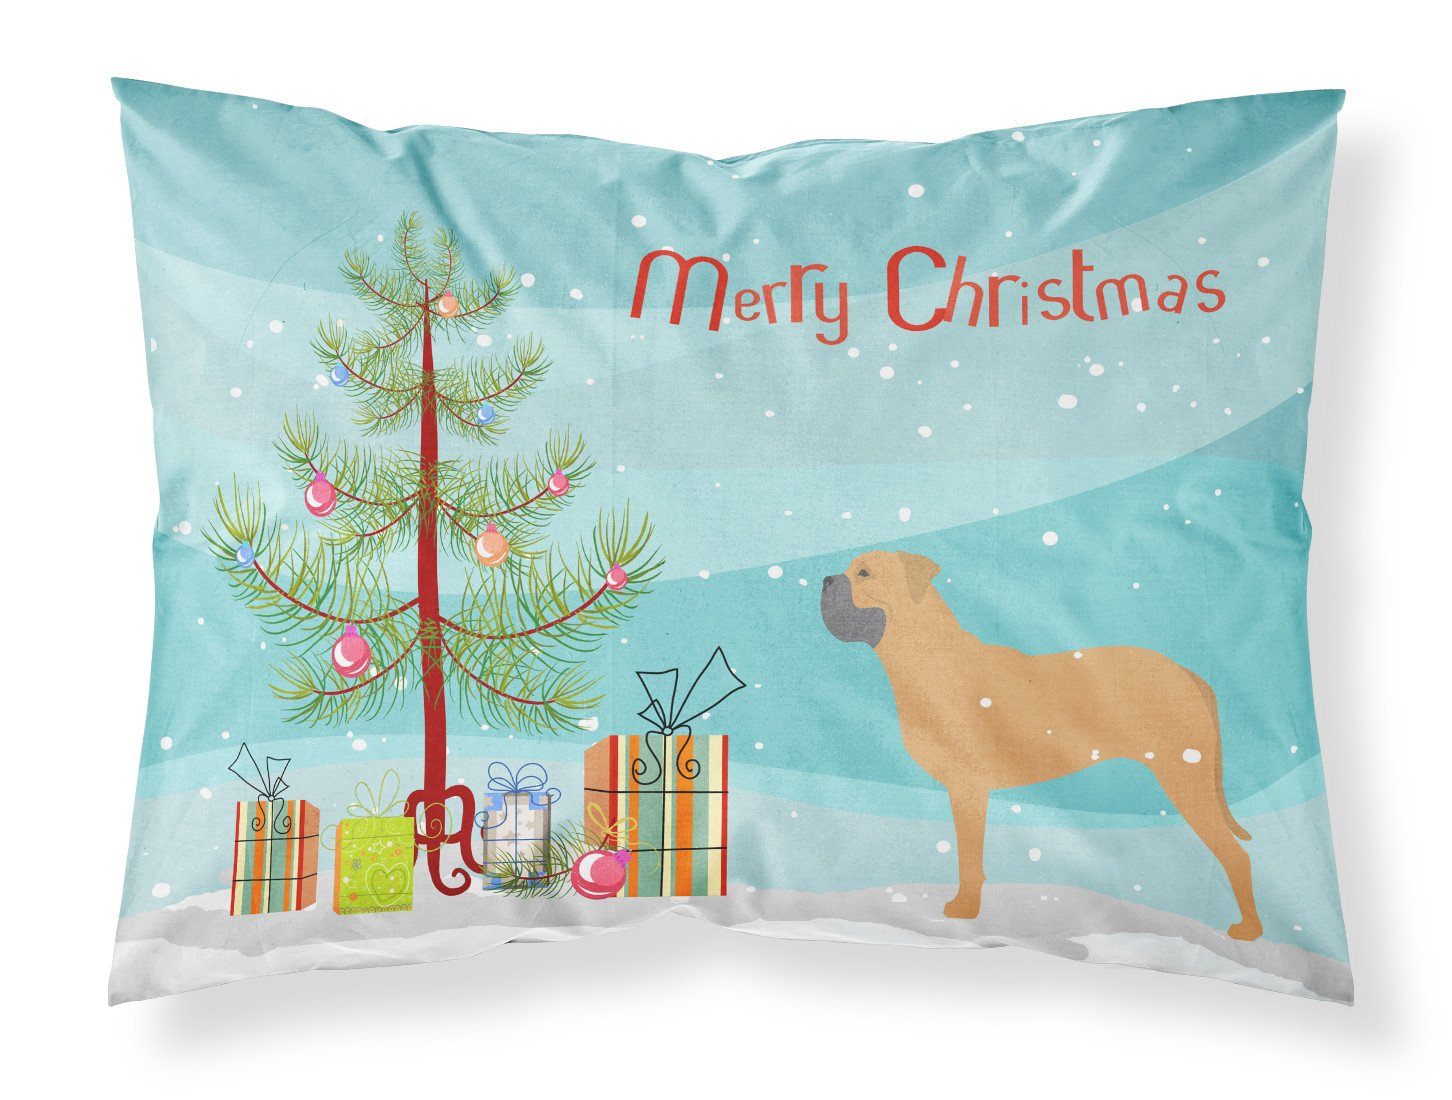 Bullmastiff Merry Christmas Tree Fabric Standard Pillowcase BB2989PILLOWCASE by Caroline's Treasures